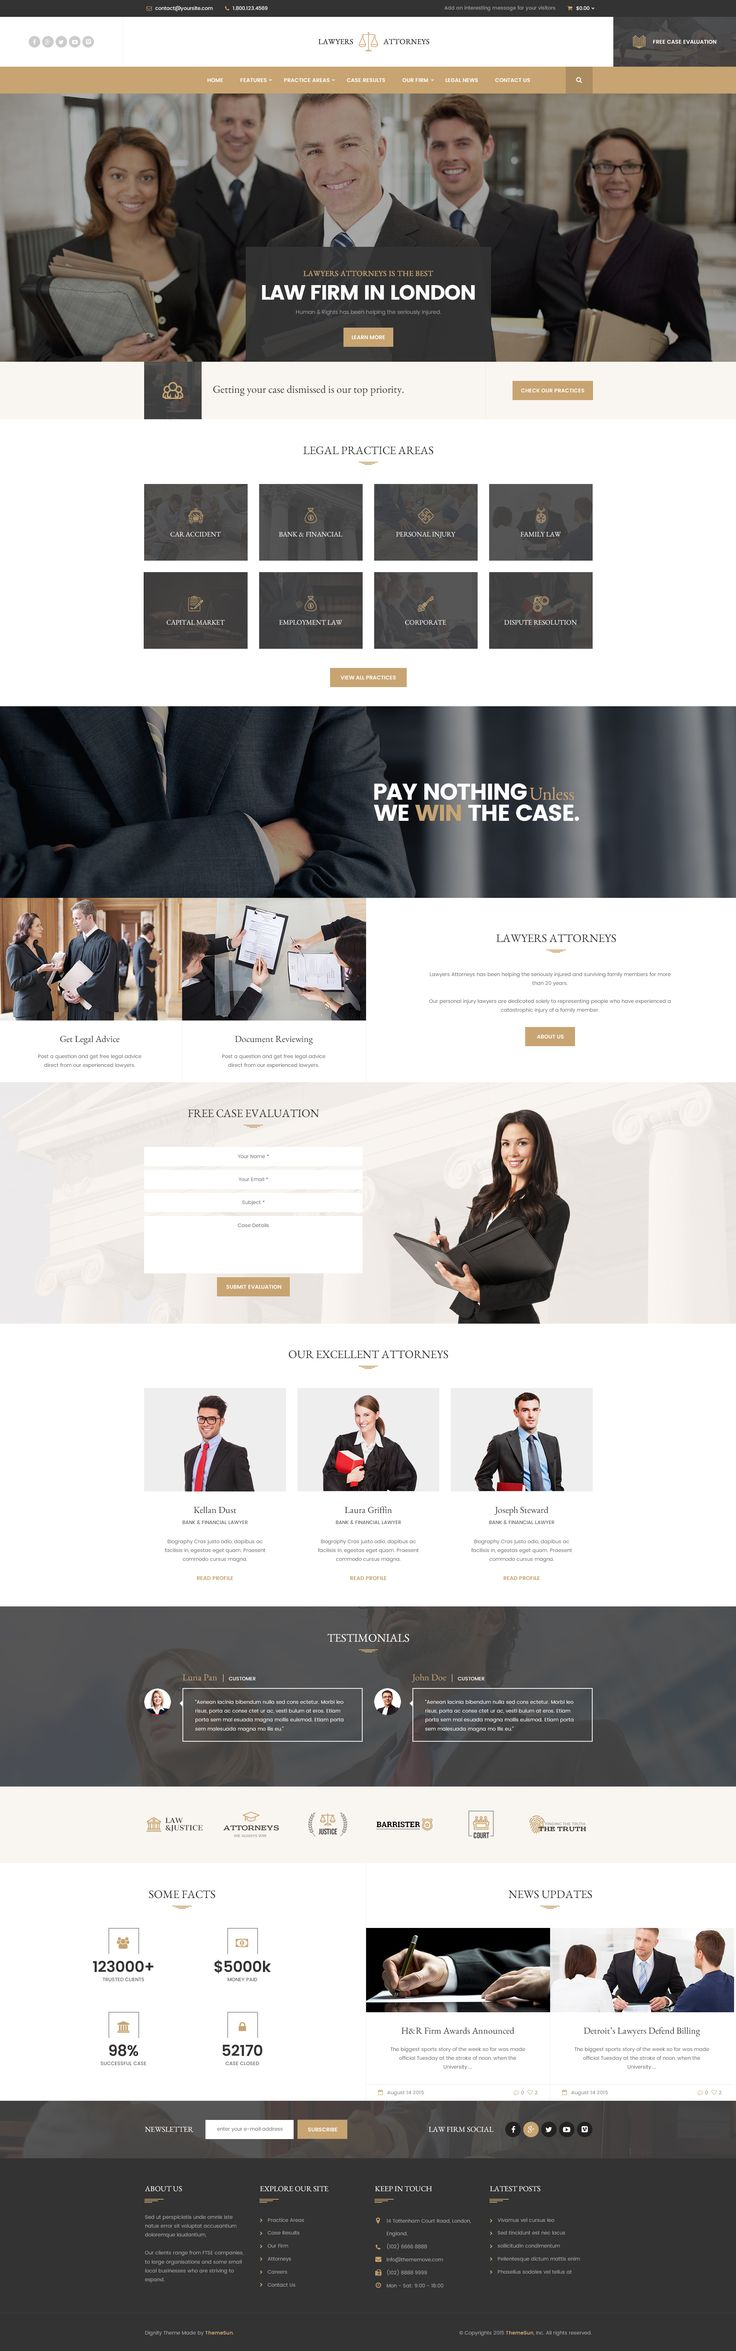 Lawyer Attorneys Modern Law Firm PSD Template - Download theme here : http://themeforest.net/item/lawyer-attorneys-modern-law-firm-psd-template/12866819?ref=pxcr